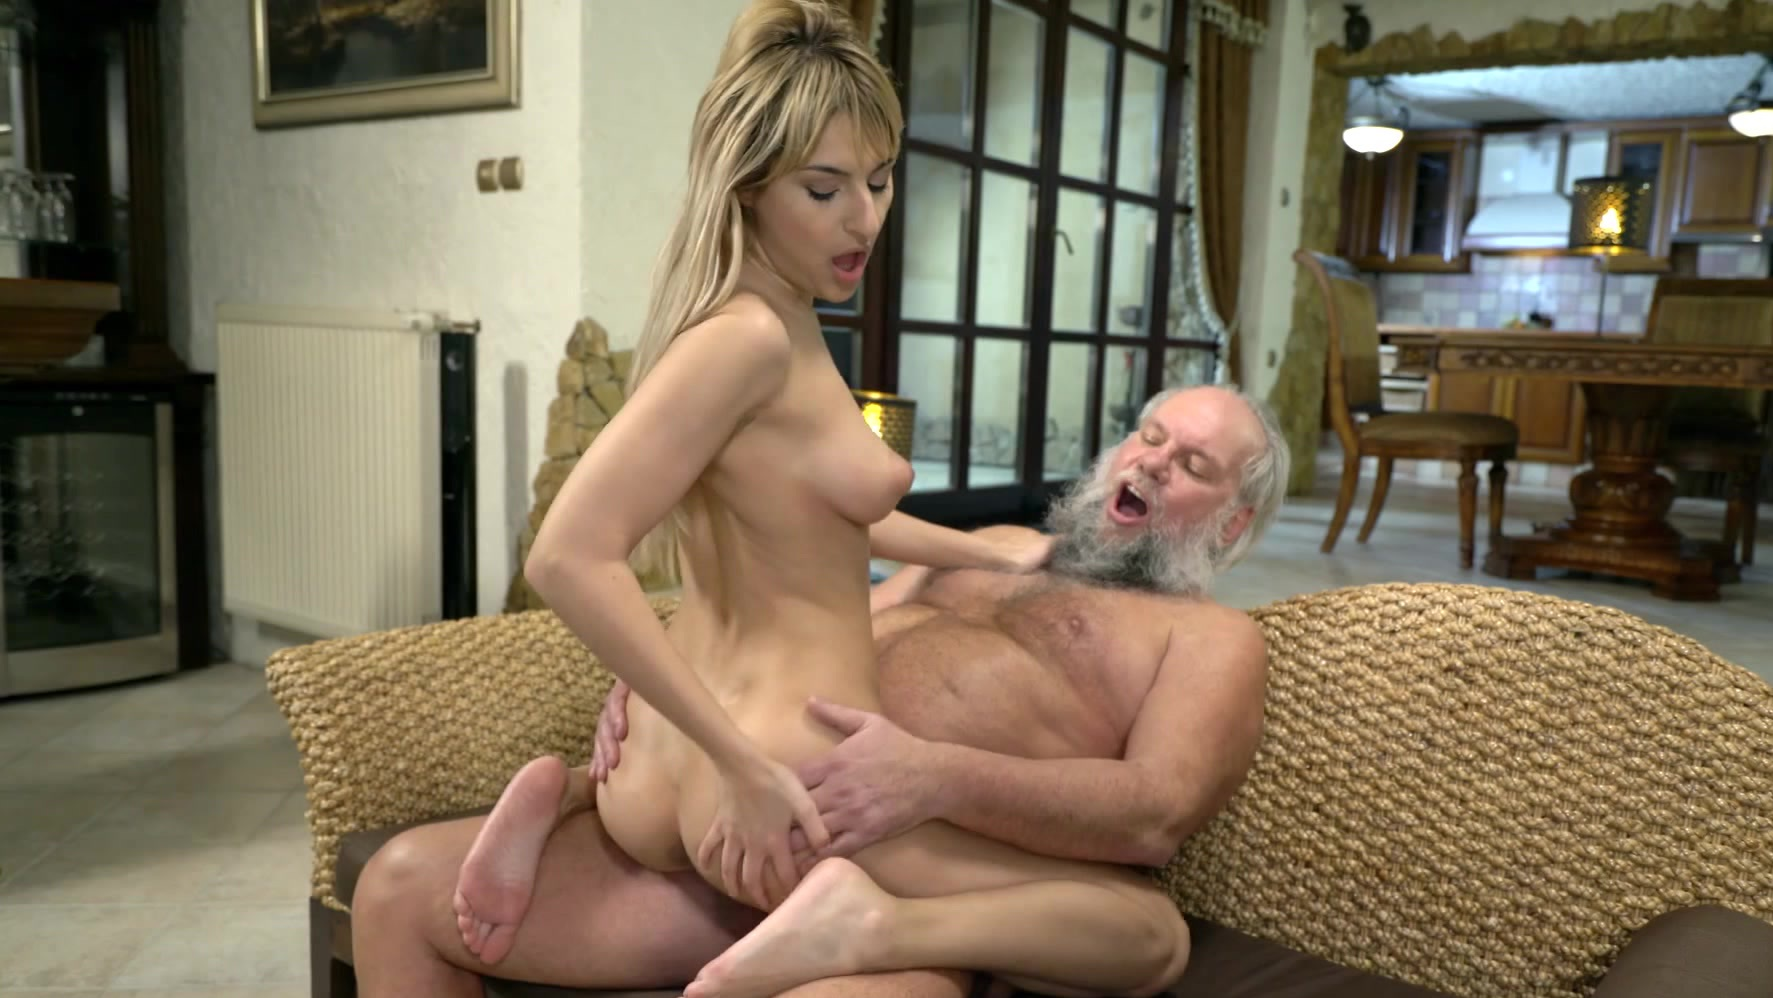 Blonde girl gets fucked by another guy Amazing Blonde Girl Sarah Cute Gets Eaten Out And Fucked By Horny Old Man Movie Albert Milf Fox